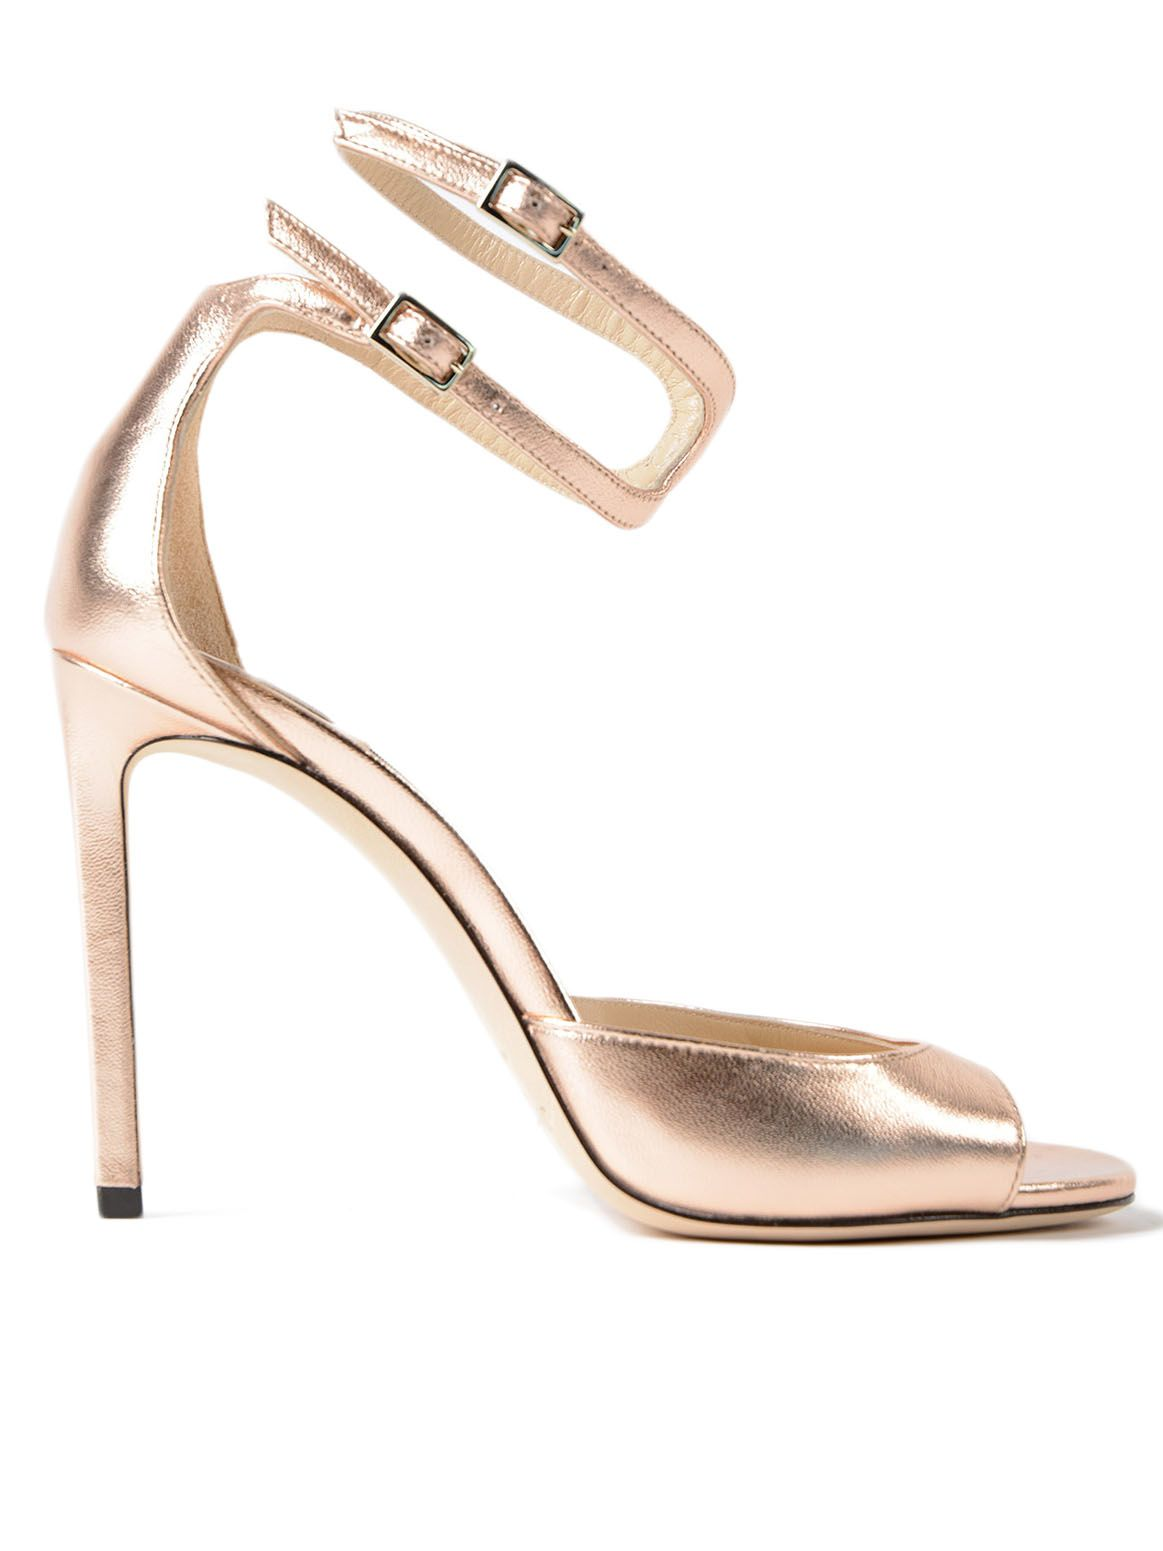 Jimmy Choo Metallic Leather Sandal